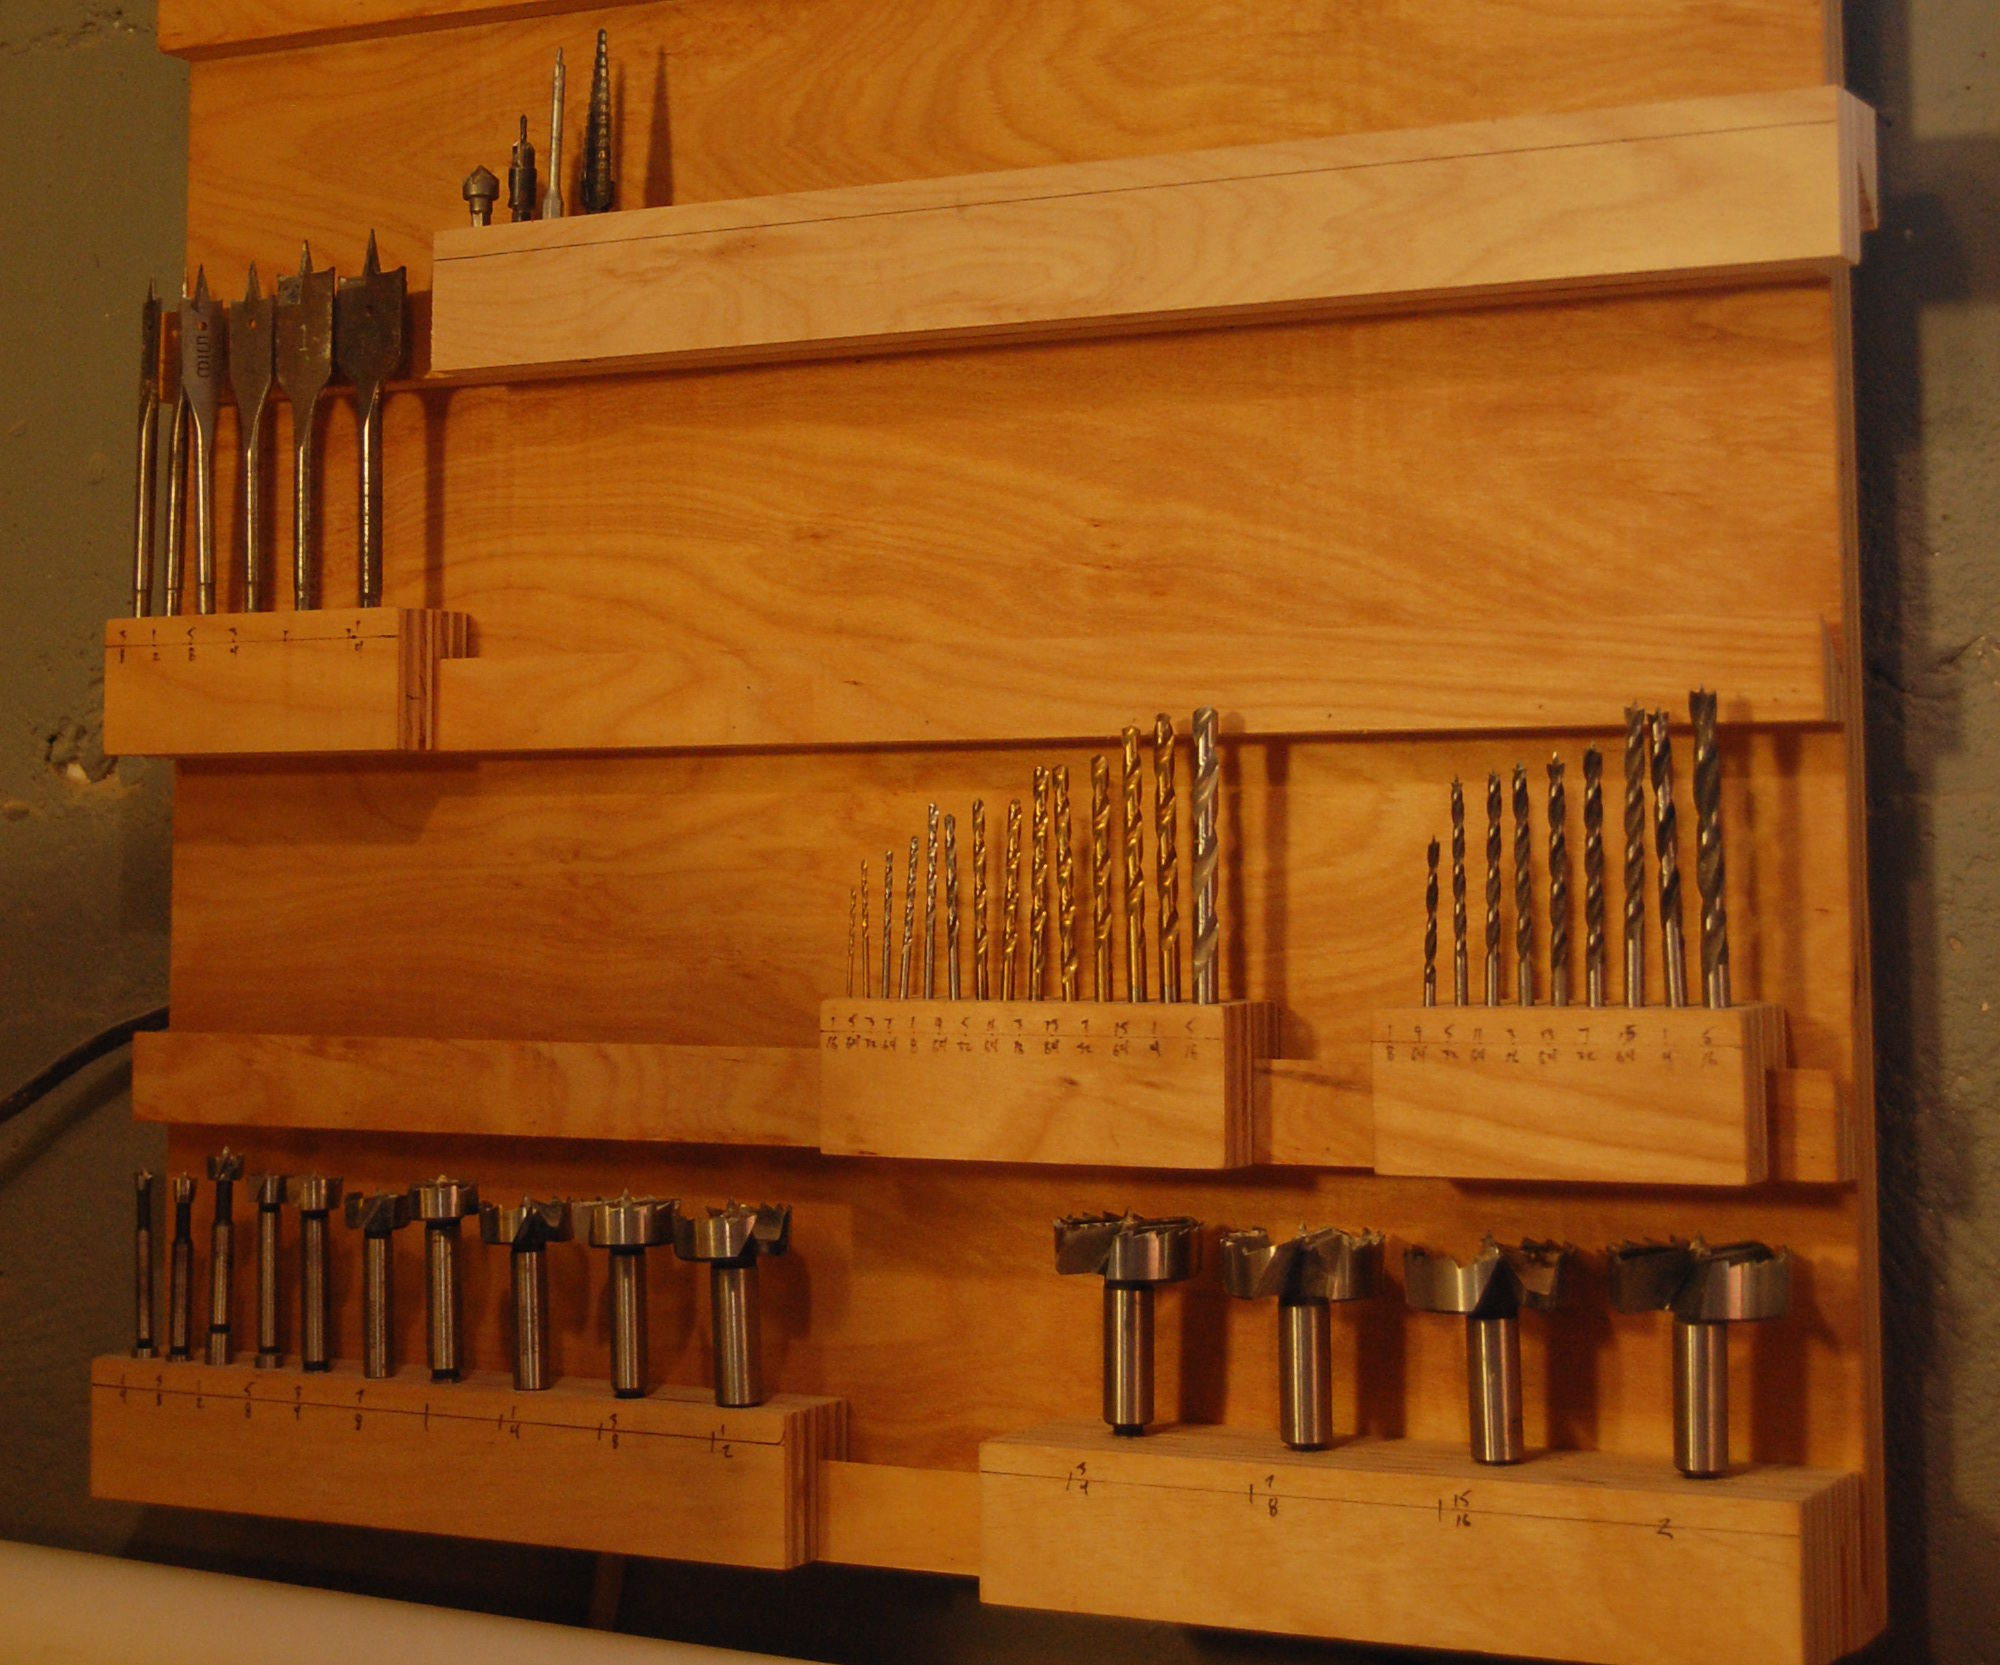 The Drill Bit Rack